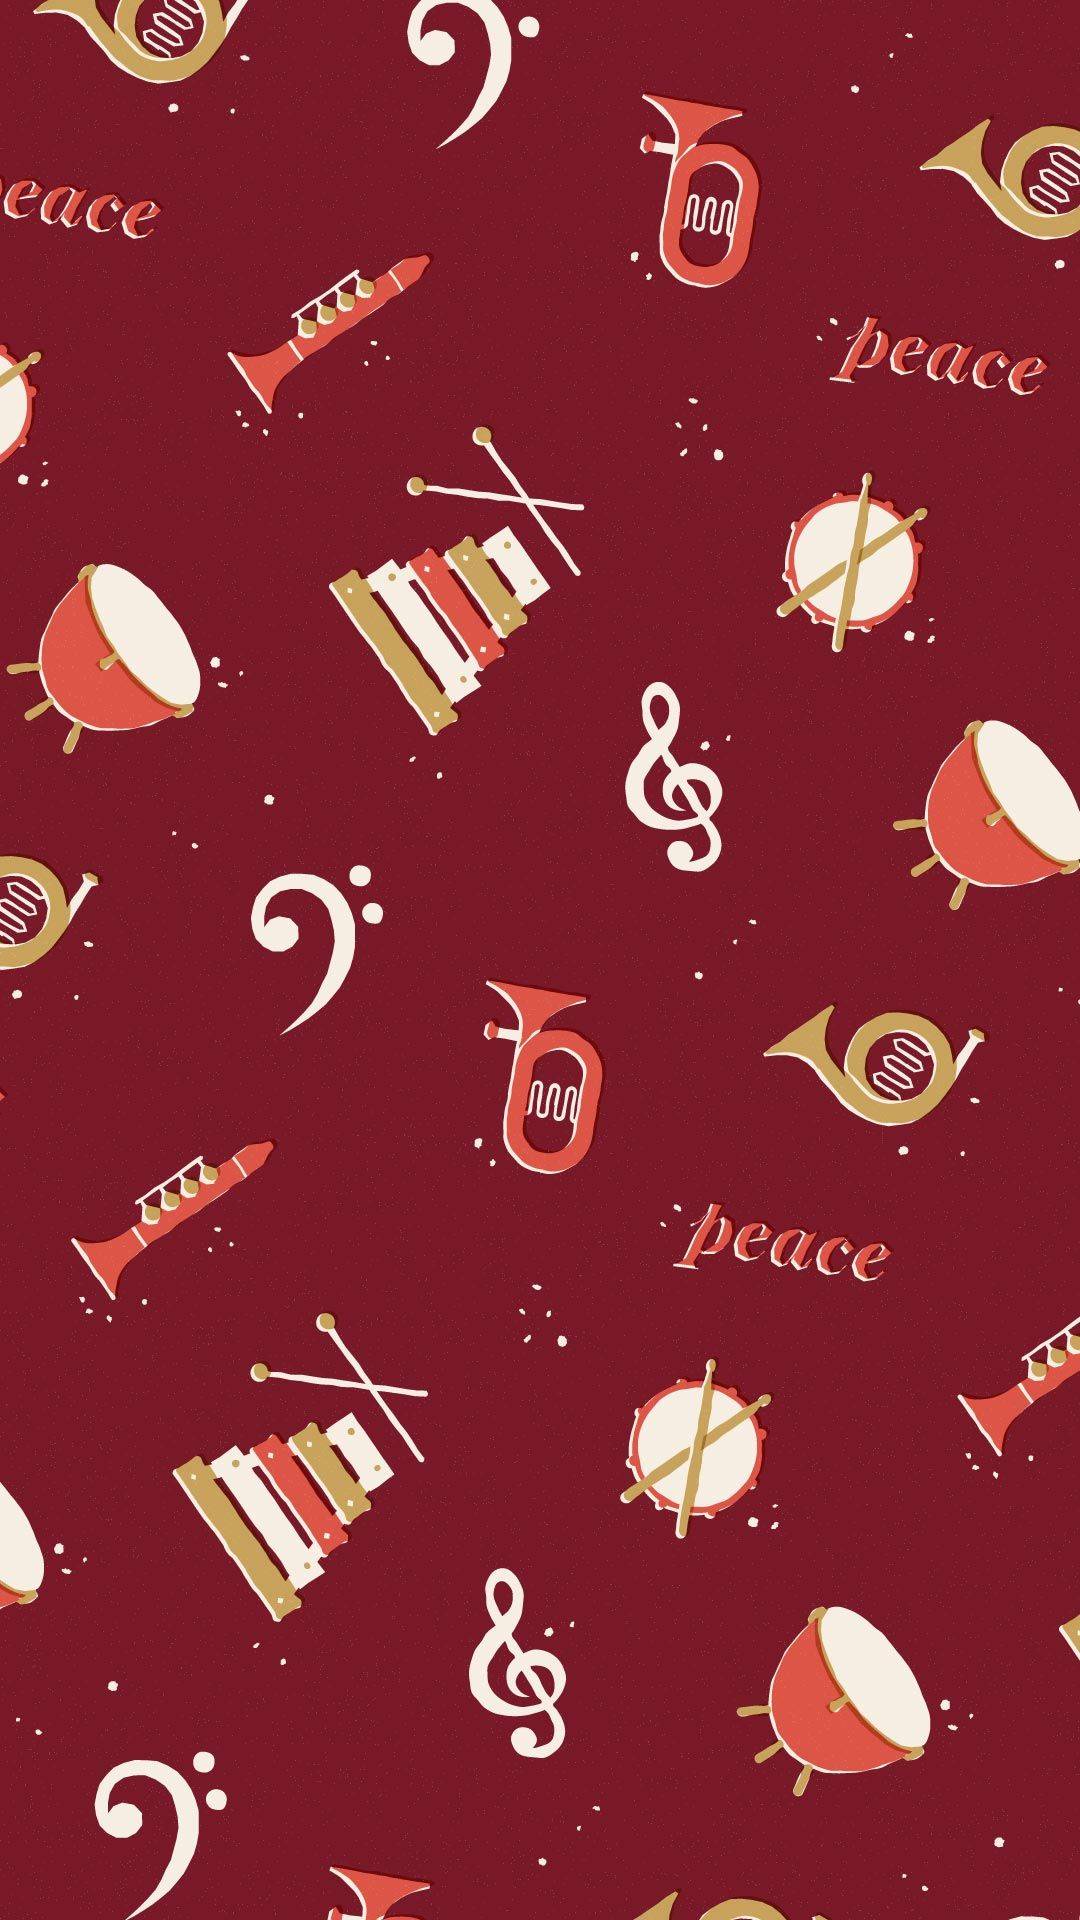 1080x1920 Concert Band Phone Wallpaper - Phone Wallpapers Holiday ...